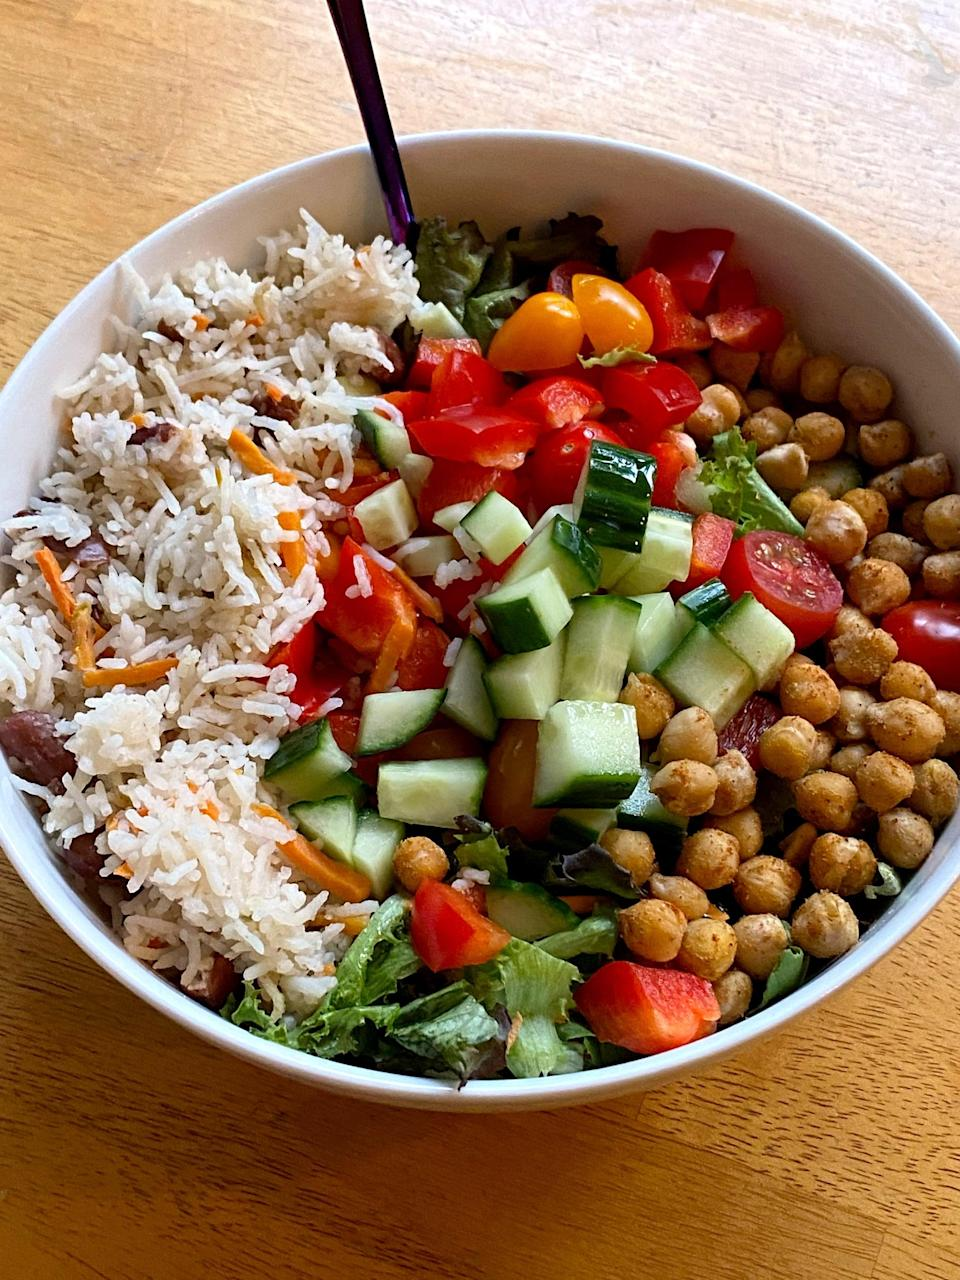 """<p>I paired a huge bowl of salad with chickpeas sautéed with garlic powder and cumin, and rice cooked with shredded carrots and kidney beans. Instead of an oil-based dressing, I drizzled it with my favorite flavored vinegar, <a href=""""https://www.amazon.com/Saratoga-Olive-Oil-Company-Cranberry/dp/B07175QJX5/ref=sr_1_1_sspa?dchild=1&amp;keywords=saratoga+oil+pear+cranberry+vinegar&amp;qid=1620328852&amp;sr=8-1-spons&amp;psc=1&amp;spLa=ZW5jcnlwdGVkUXVhbGlmaWVyPUExVzVLOVhSWUVTUkRRJmVuY3J5cHRlZElkPUEwMzE2MDQyM01STFZBVUMyM082VSZlbmNyeXB0ZWRBZElkPUEwMDE3NDgyMjlXSlJTS0ZGTU01VyZ3aWRnZXROYW1lPXNwX2F0ZiZhY3Rpb249Y2xpY2tSZWRpcmVjdCZkb05vdExvZ0NsaWNrPXRydWU="""" class=""""link rapid-noclick-resp"""" rel=""""nofollow noopener"""" target=""""_blank"""" data-ylk=""""slk:Cranberry Pear White Balsamic"""">Cranberry Pear White Balsamic</a> from Saratoga Olive Oil. </p>"""